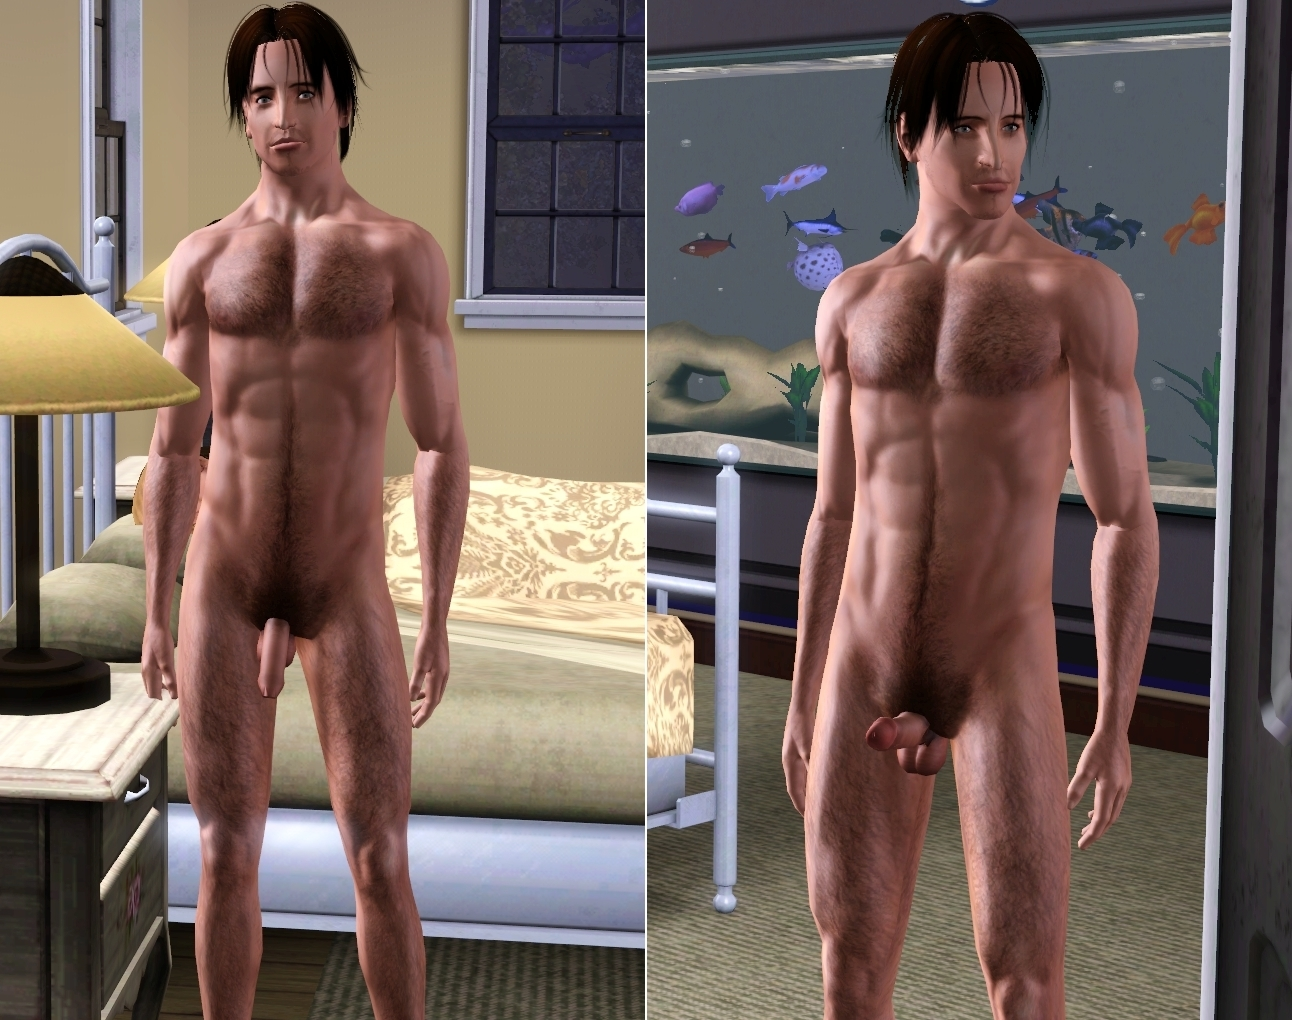 Sims nude gay sex sexy film